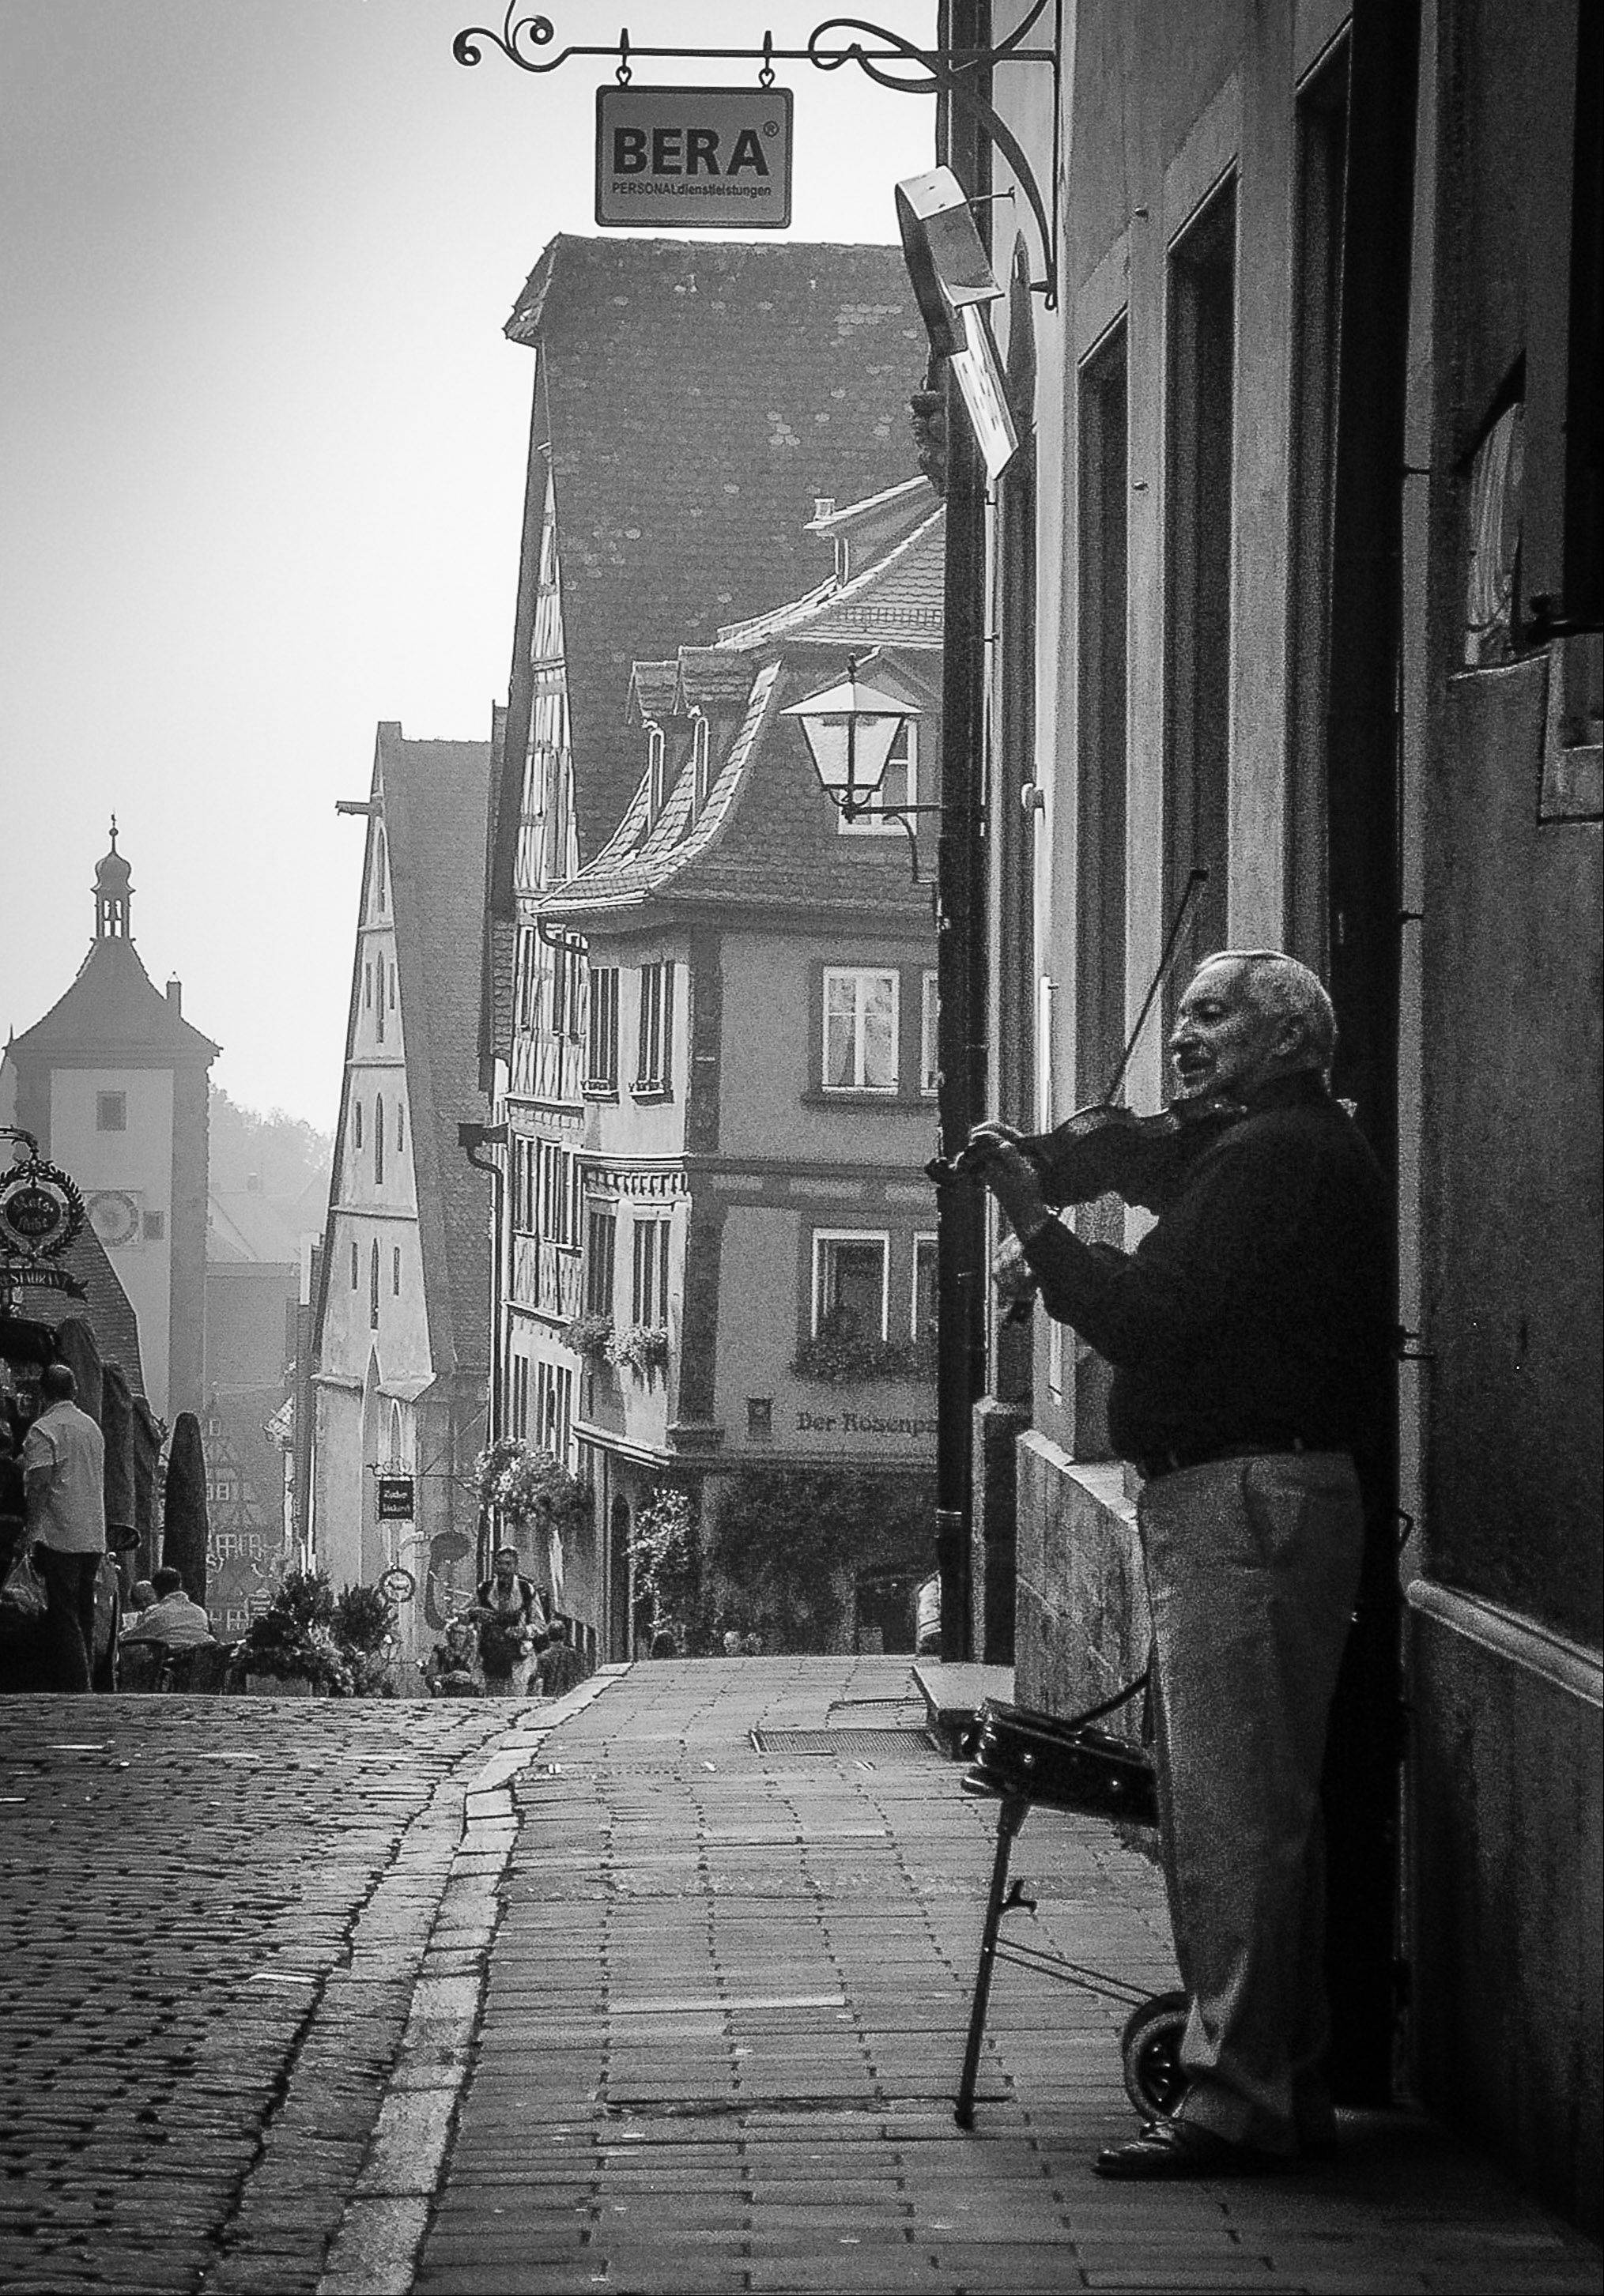 A violinist plays for donations on the cobblestone streets of Rothenburg, Germany early in the morning in September 2009. Rothenburg is a walled medieval city that survived World War II and is a must see destination in Germany.